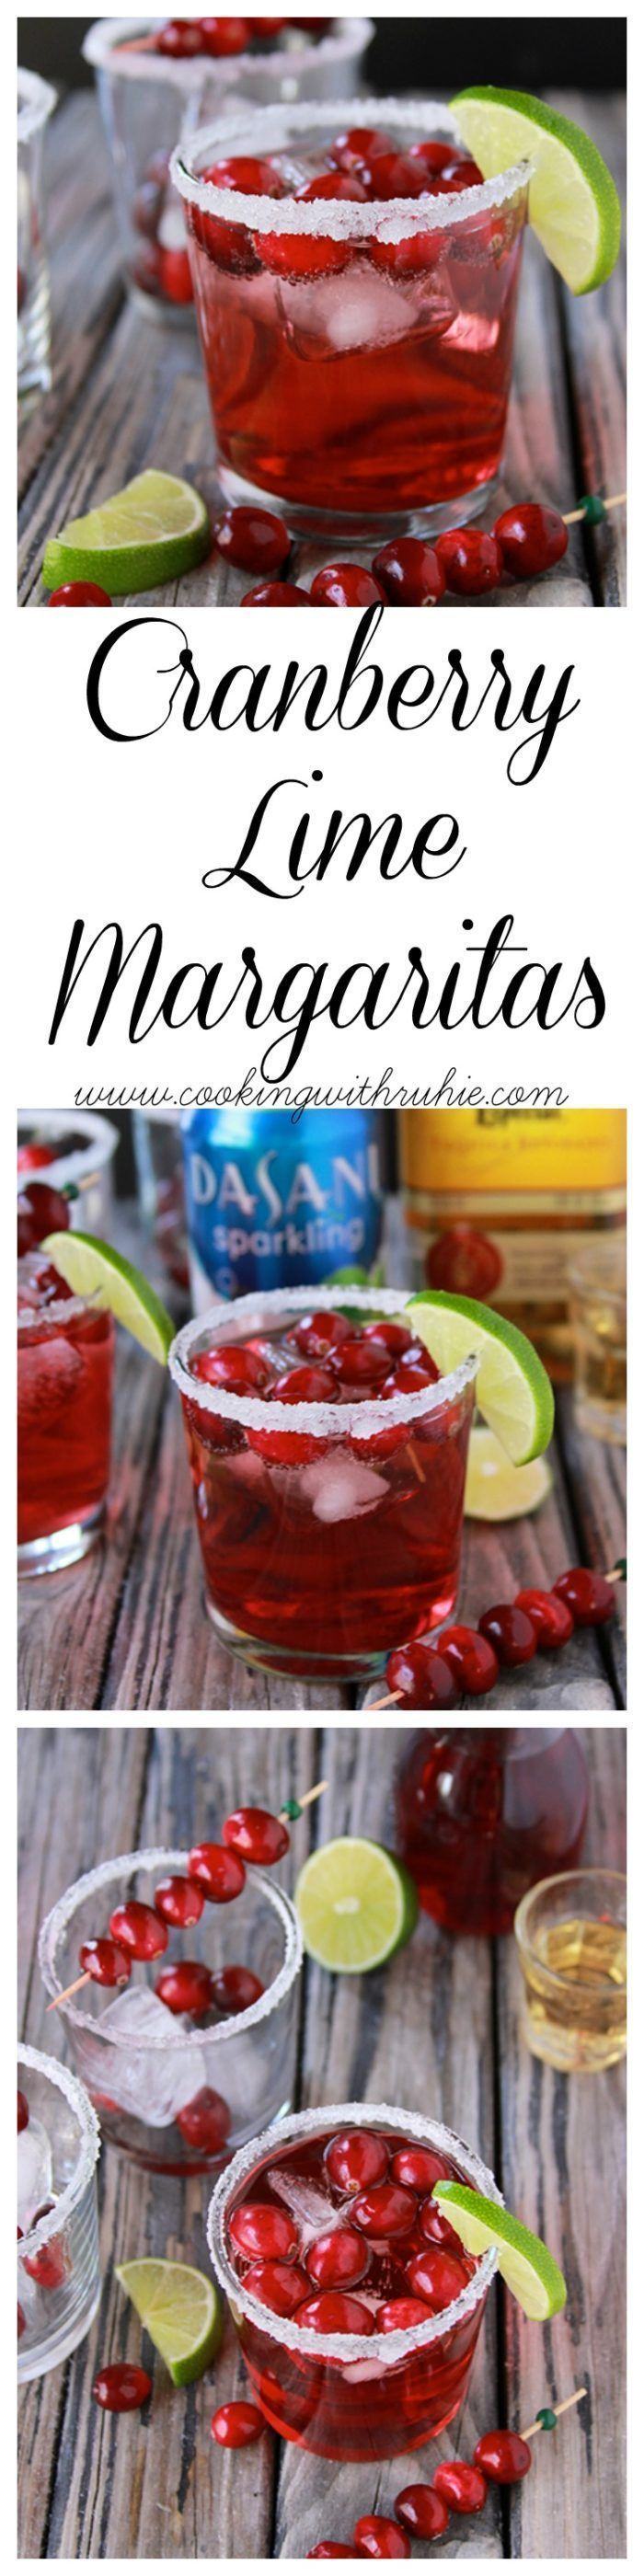 Cranberry Lime Margaritas on www.cookingwithruthie.com is a beautiful addition to your holiday parties! #SparklingHolidays @walmart #limemargarita Cranberry Lime Margaritas on www.cookingwithruthie.com is a beautiful addition to your holiday parties! #SparklingHolidays @walmart #limemargarita Cranberry Lime Margaritas on www.cookingwithruthie.com is a beautiful addition to your holiday parties! #SparklingHolidays @walmart #limemargarita Cranberry Lime Margaritas on www.cookingwithruthie.com is a #limemargarita